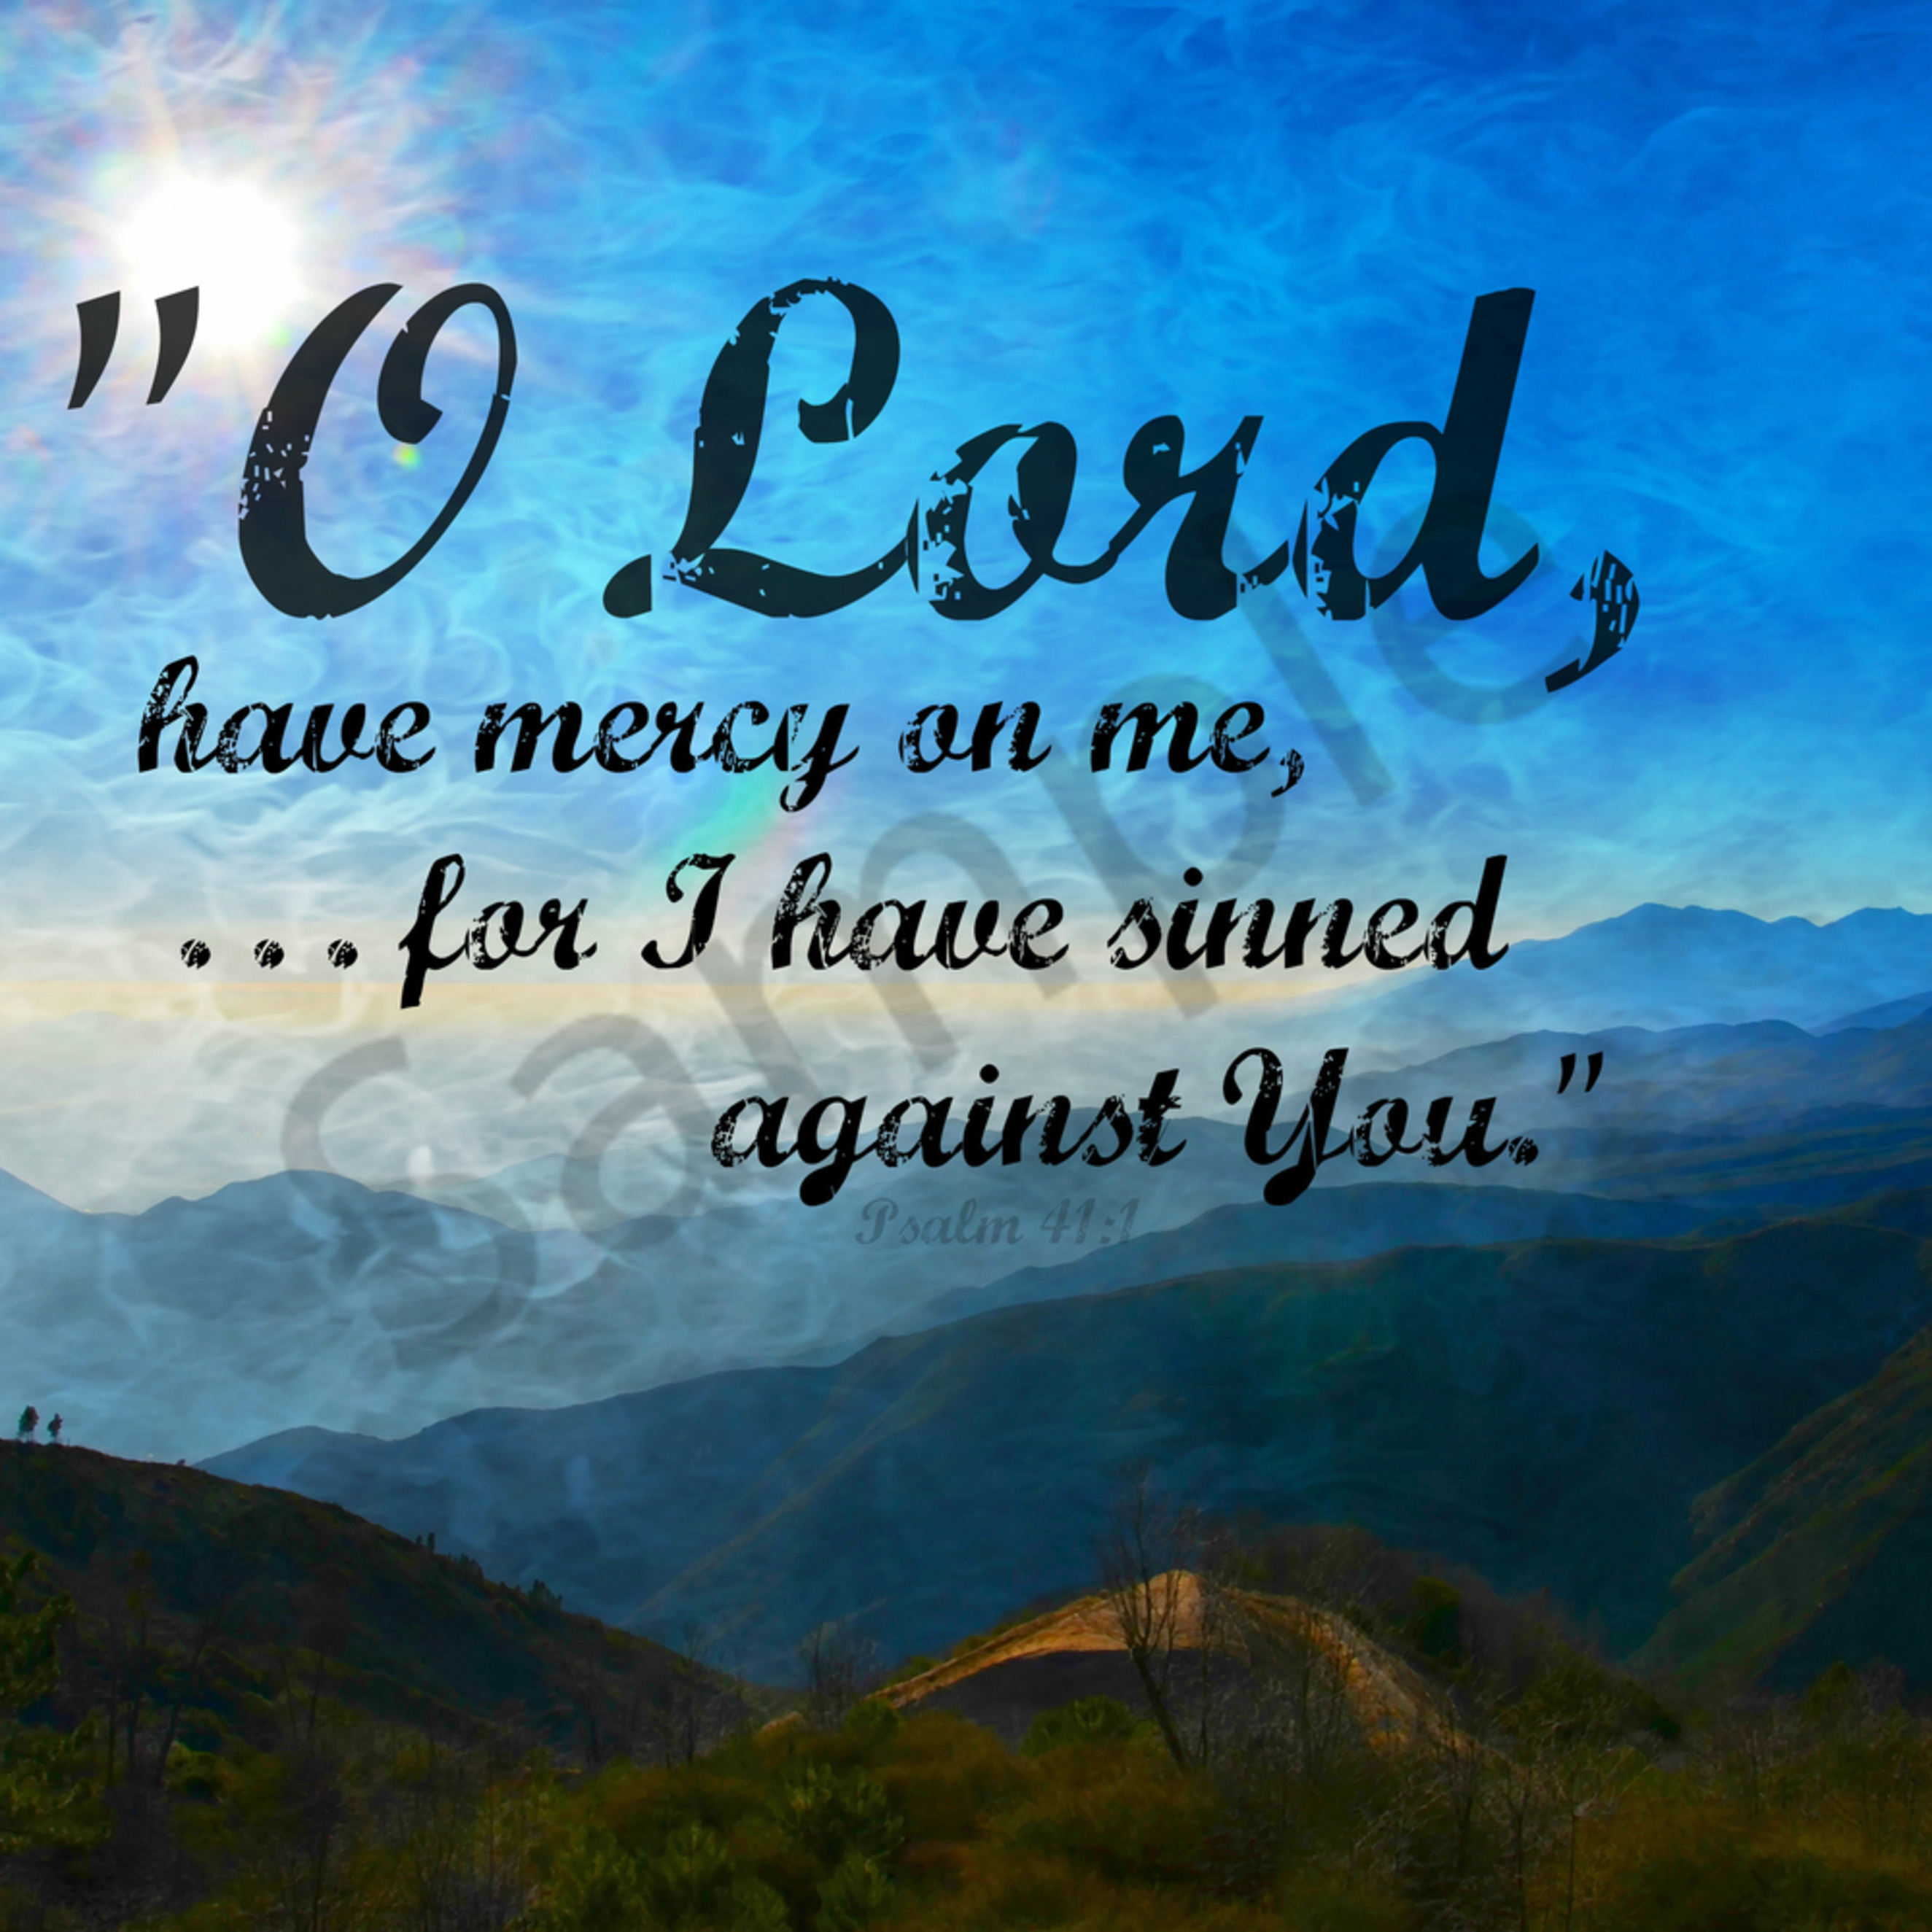 O lord have mercy on me   dsc 0630 view ontop of the mtn scl nr nature effect tag   art4theglryofgod by sharon 2013 bruxll